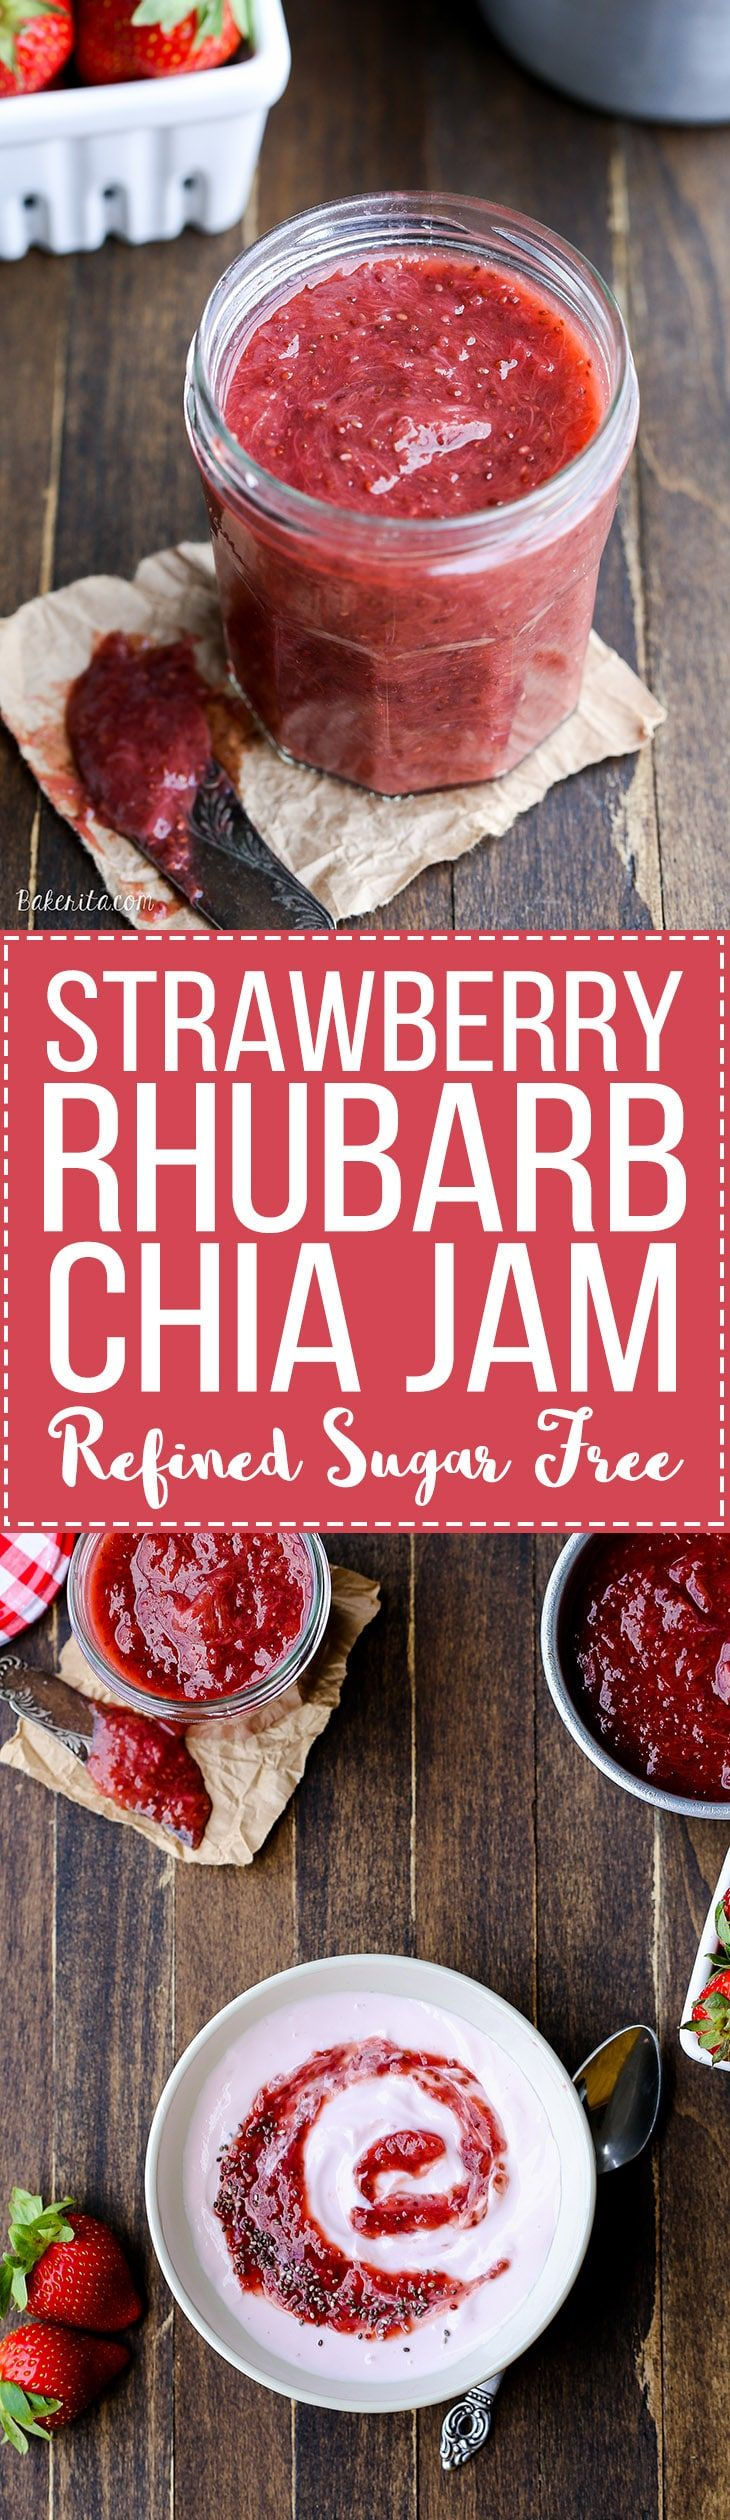 This Strawberry Rhubarb Chia Jam is refined sugar free and made without pectin -…